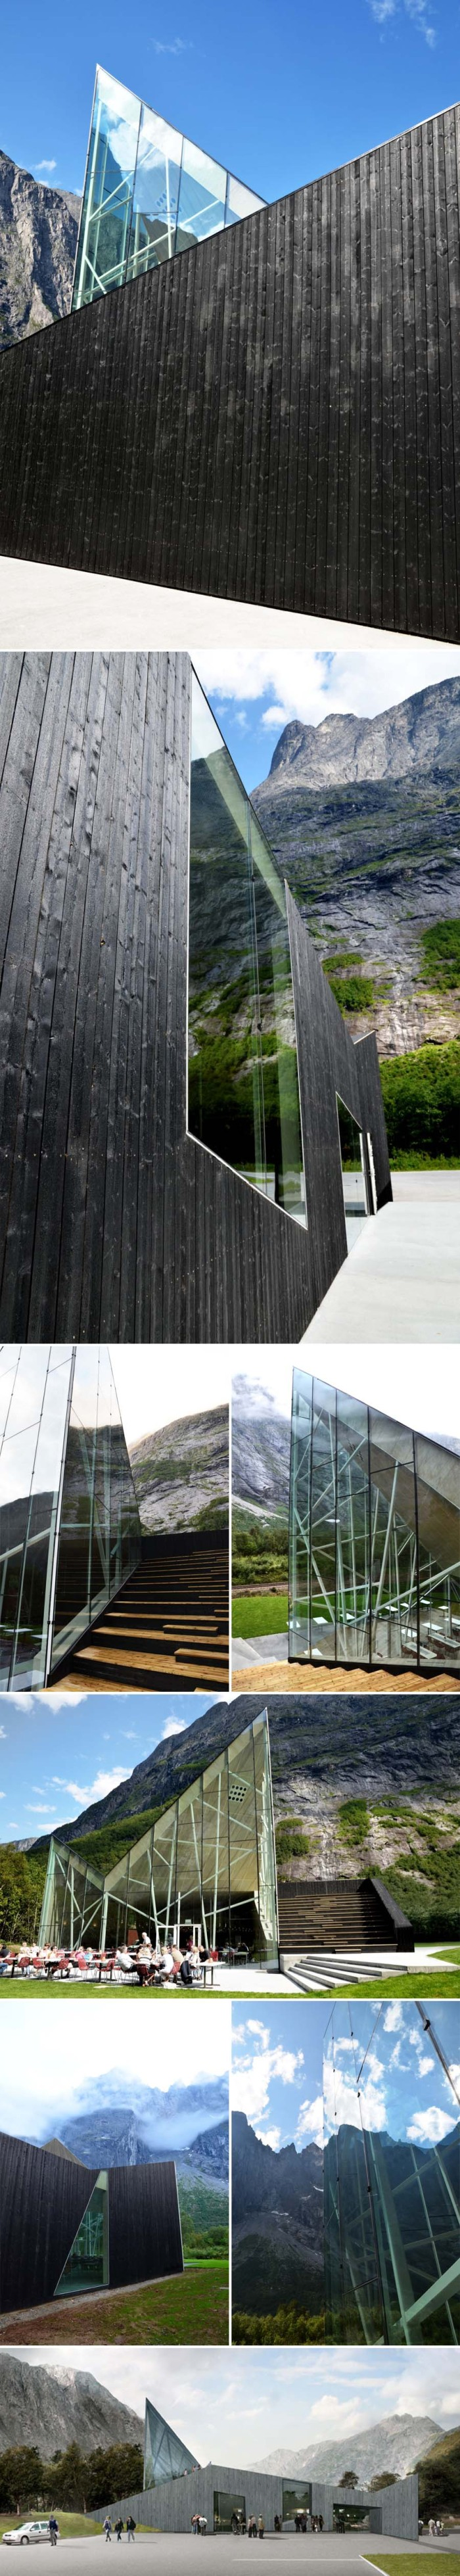 Restaurant design, contemporary architecture, Reiulf Ramstad, Norway, glass facade